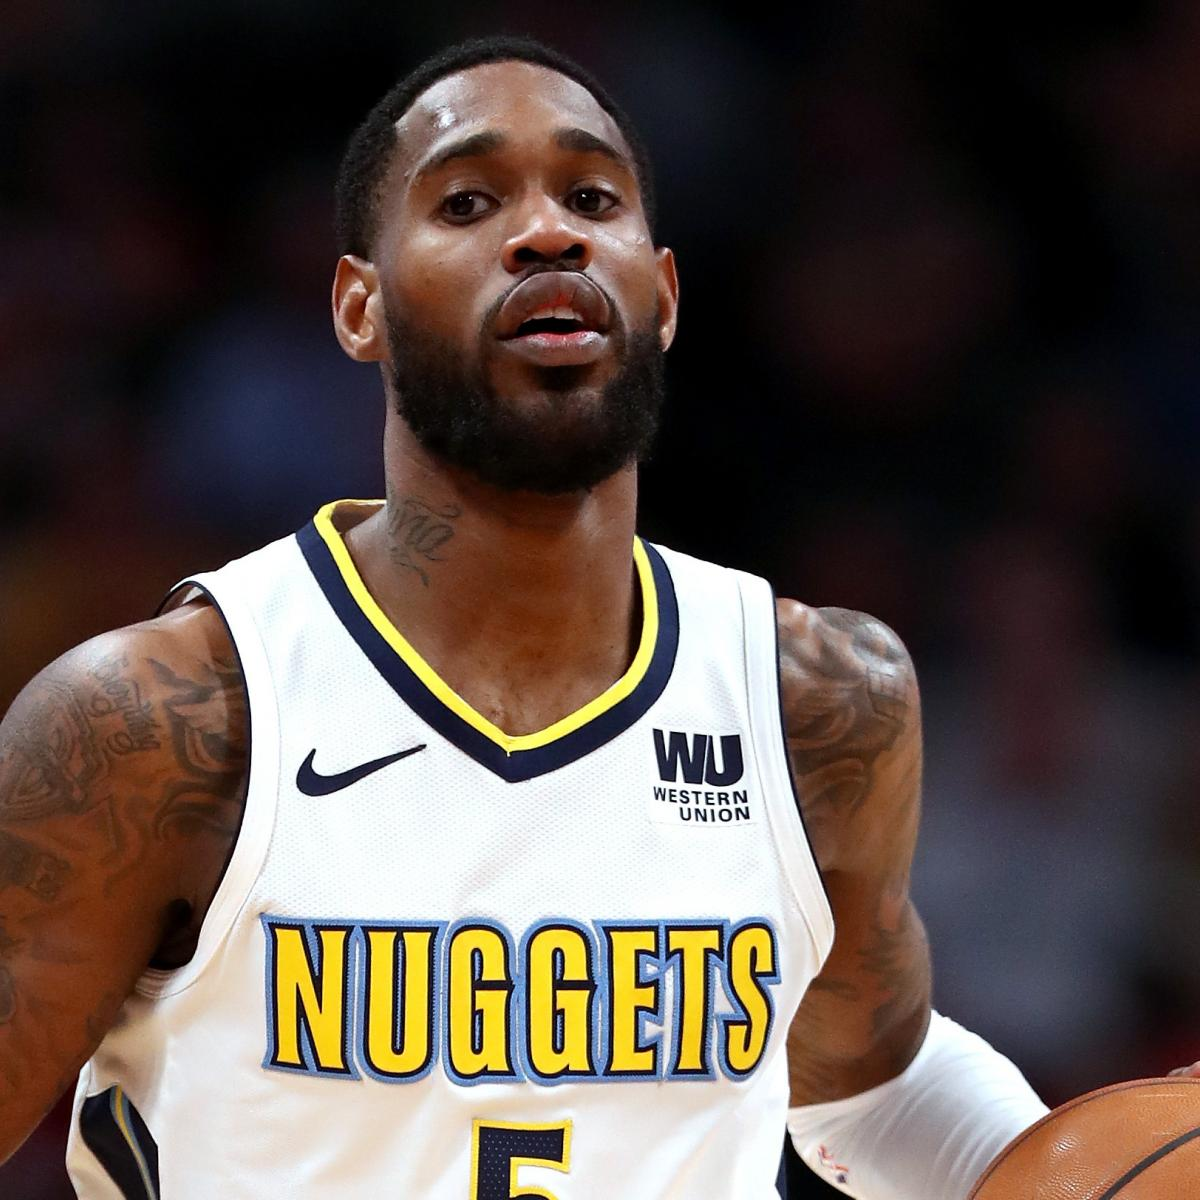 NBA Rumors: Will Barton Turned Down 4-Year, $42M Contract